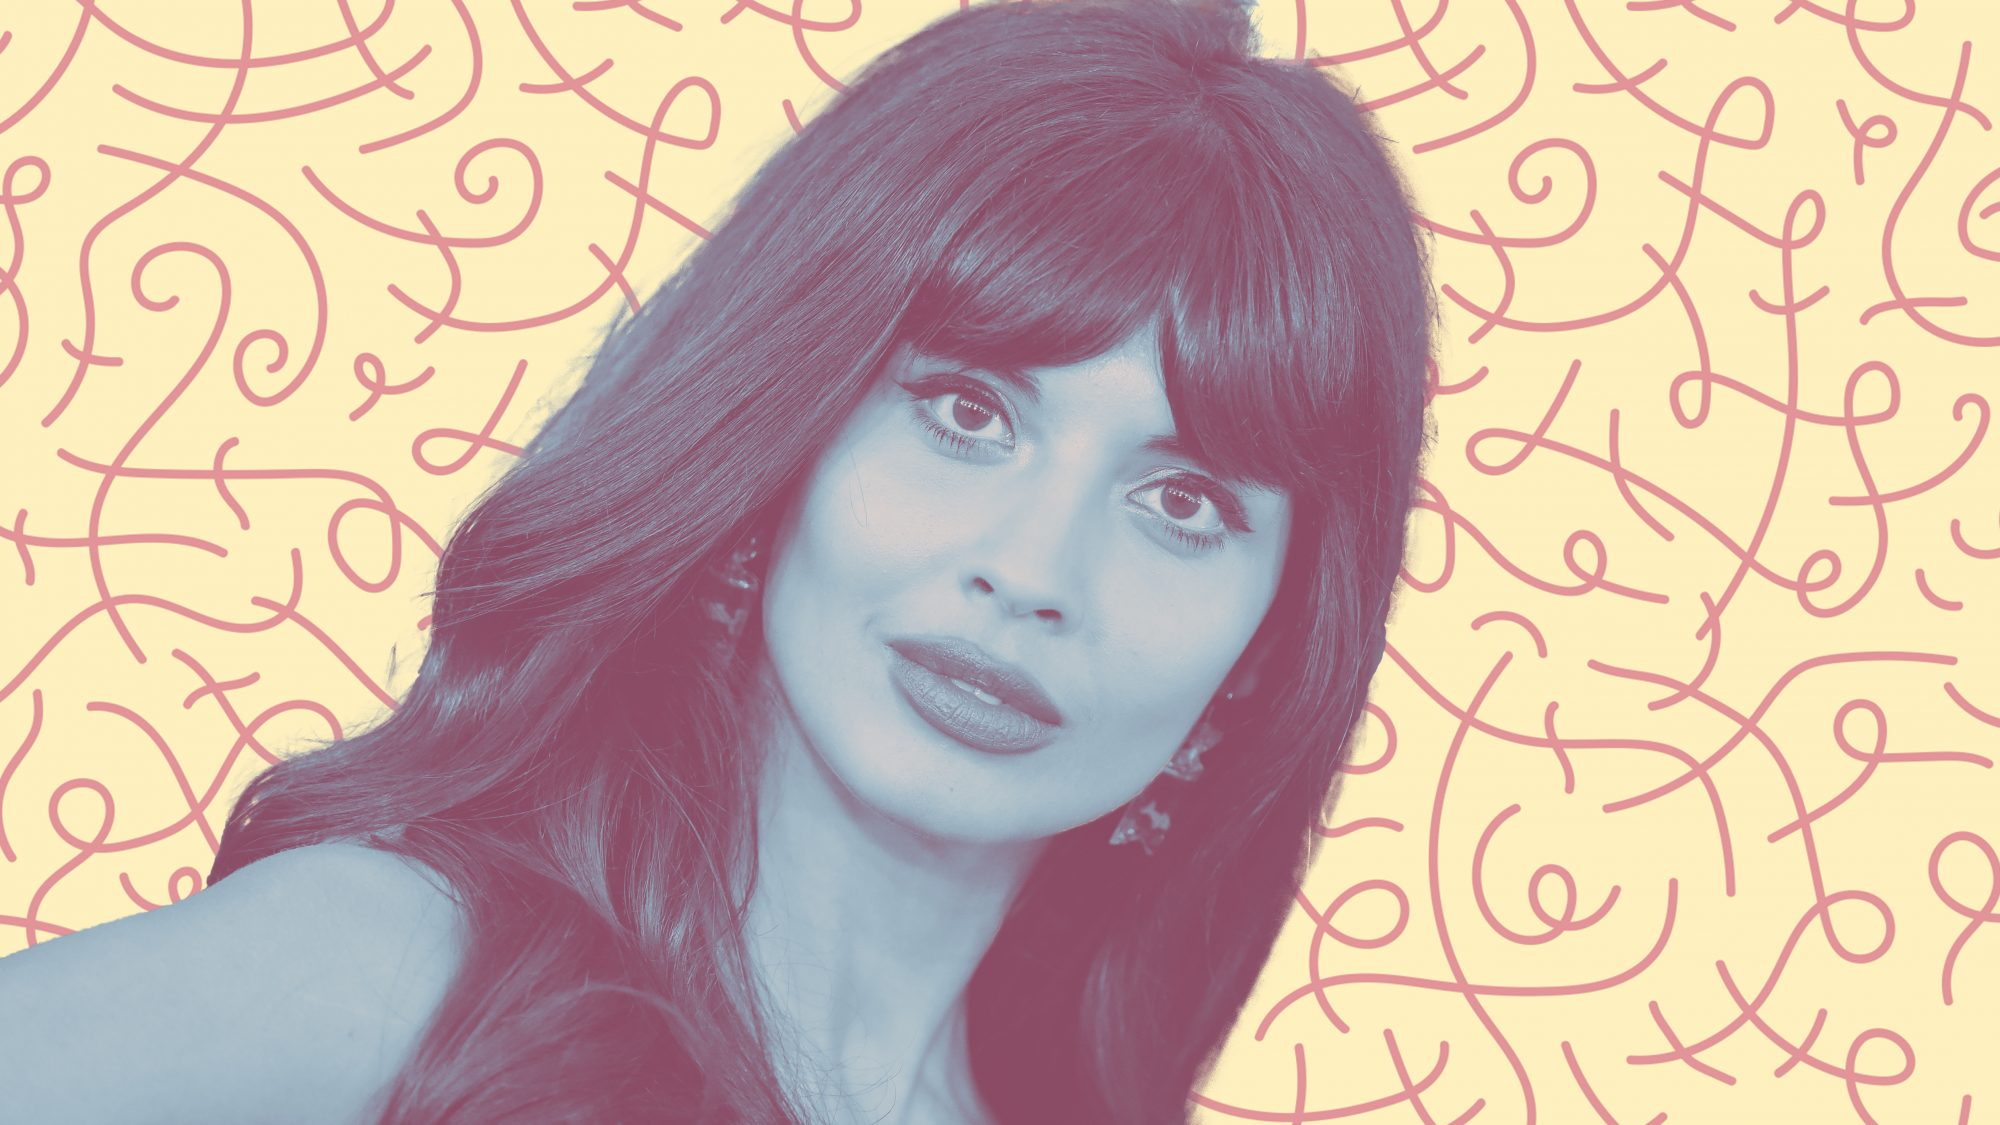 Jameela Jamil Just Revealed She Has Ehlers-Danlos Syndrome—Here's What to Know About the Rare Condition